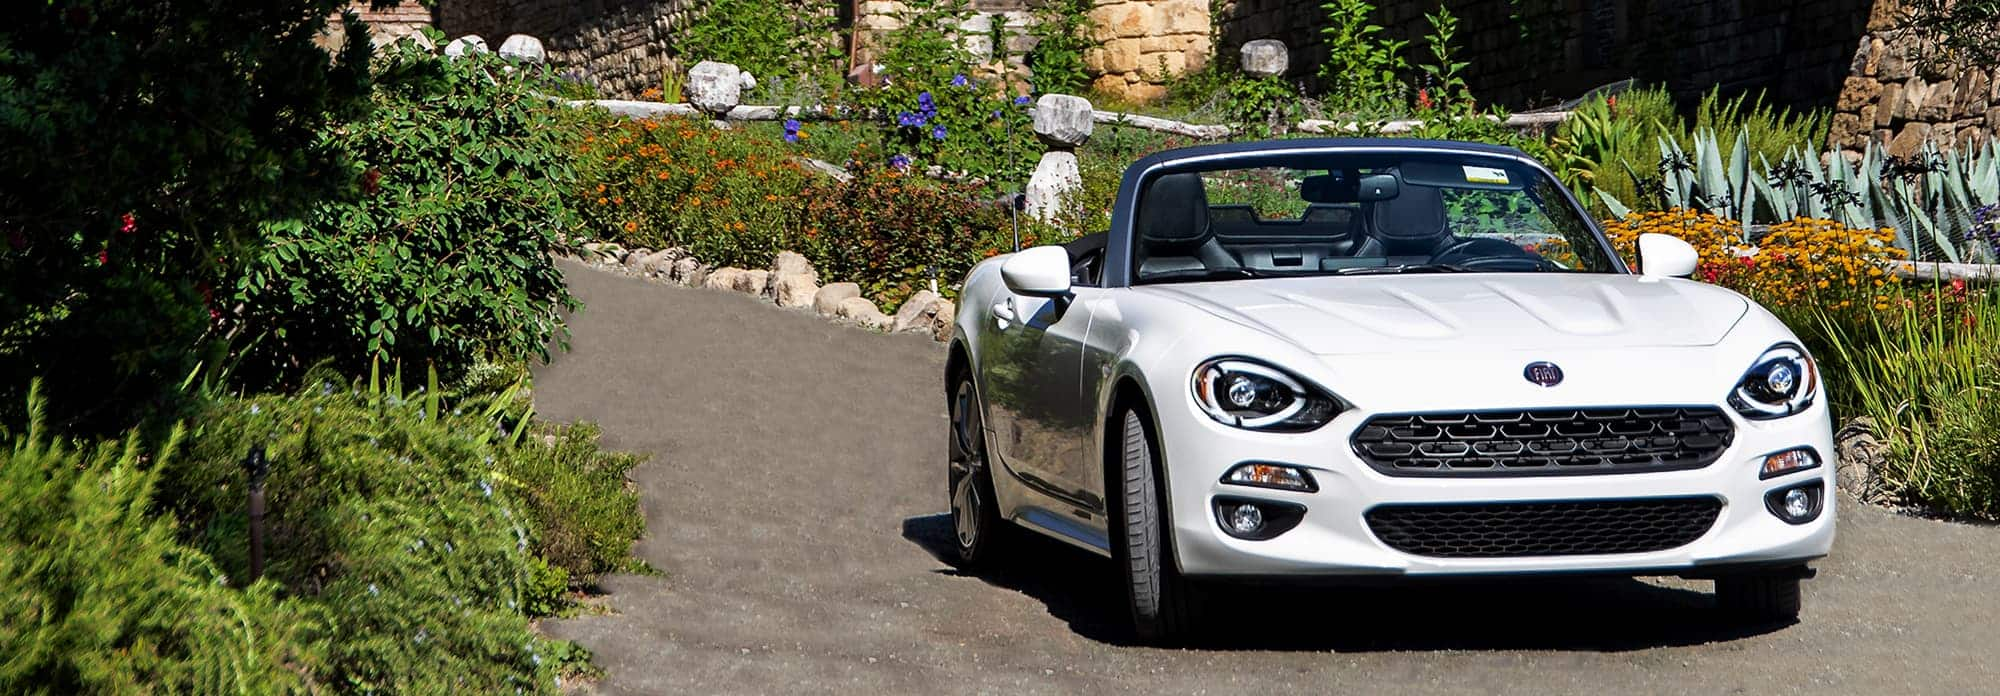 A front view of a white 2020 Fiat 124 Spider Lusso parked in a garden full of various plants and shrubs.